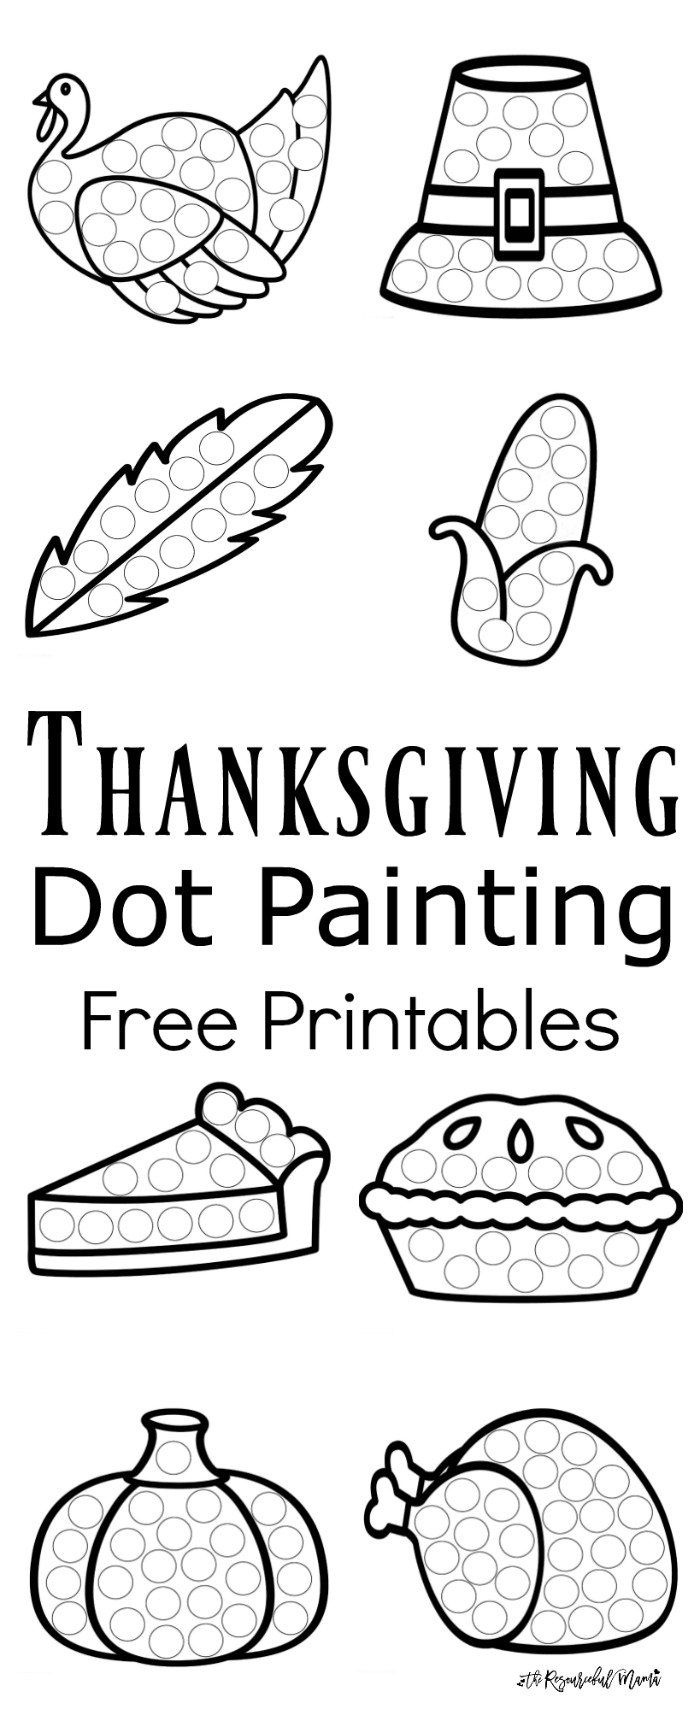 Thanksgiving Dot Painting {Free Printables} | Best Of Kids And - Free Dot Painting Printables